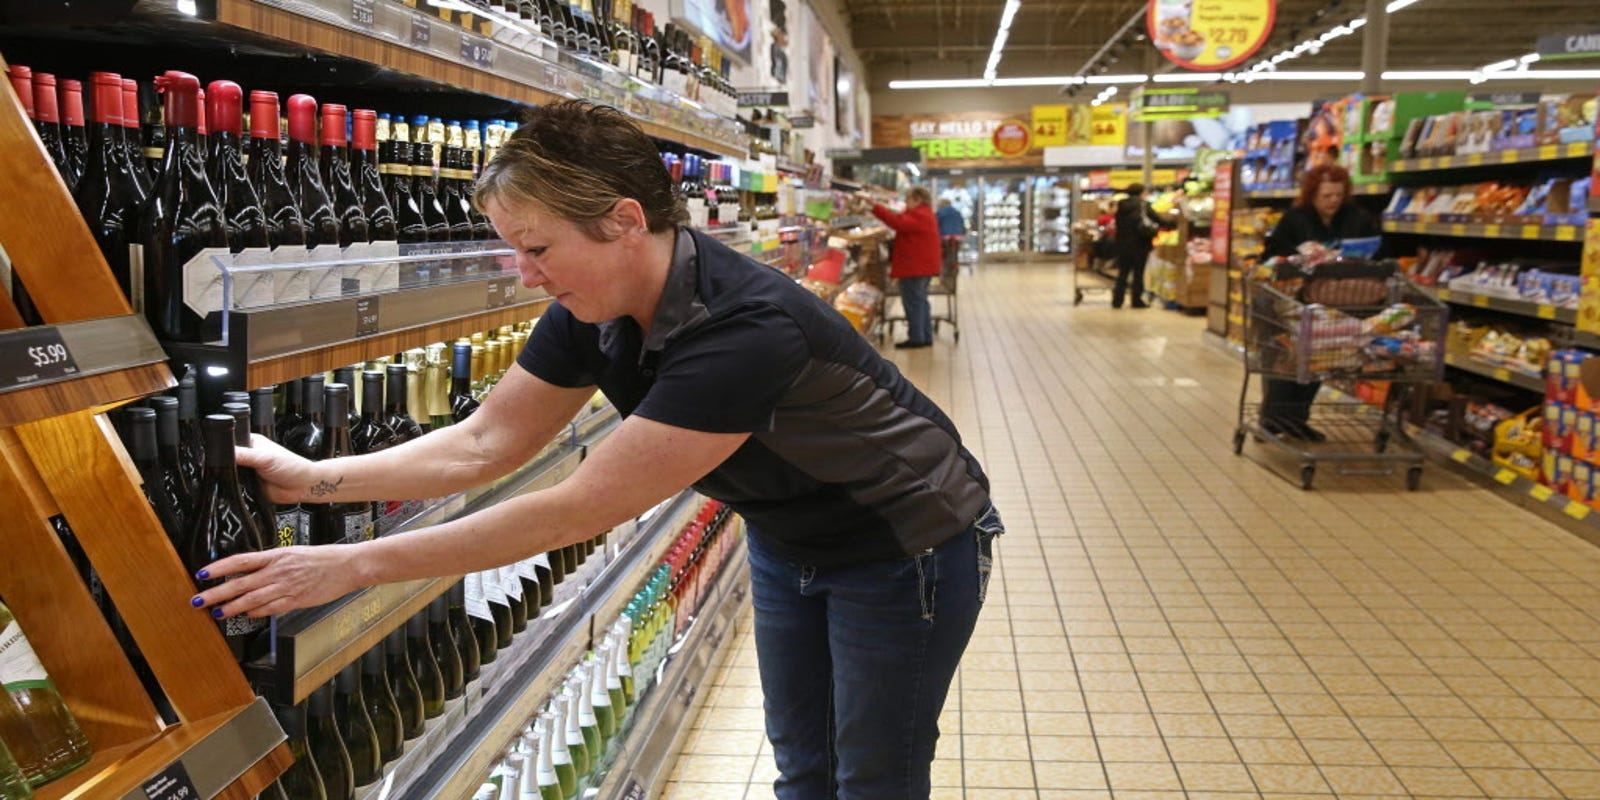 Aldi flourishes in competitive market with simple, low-cost